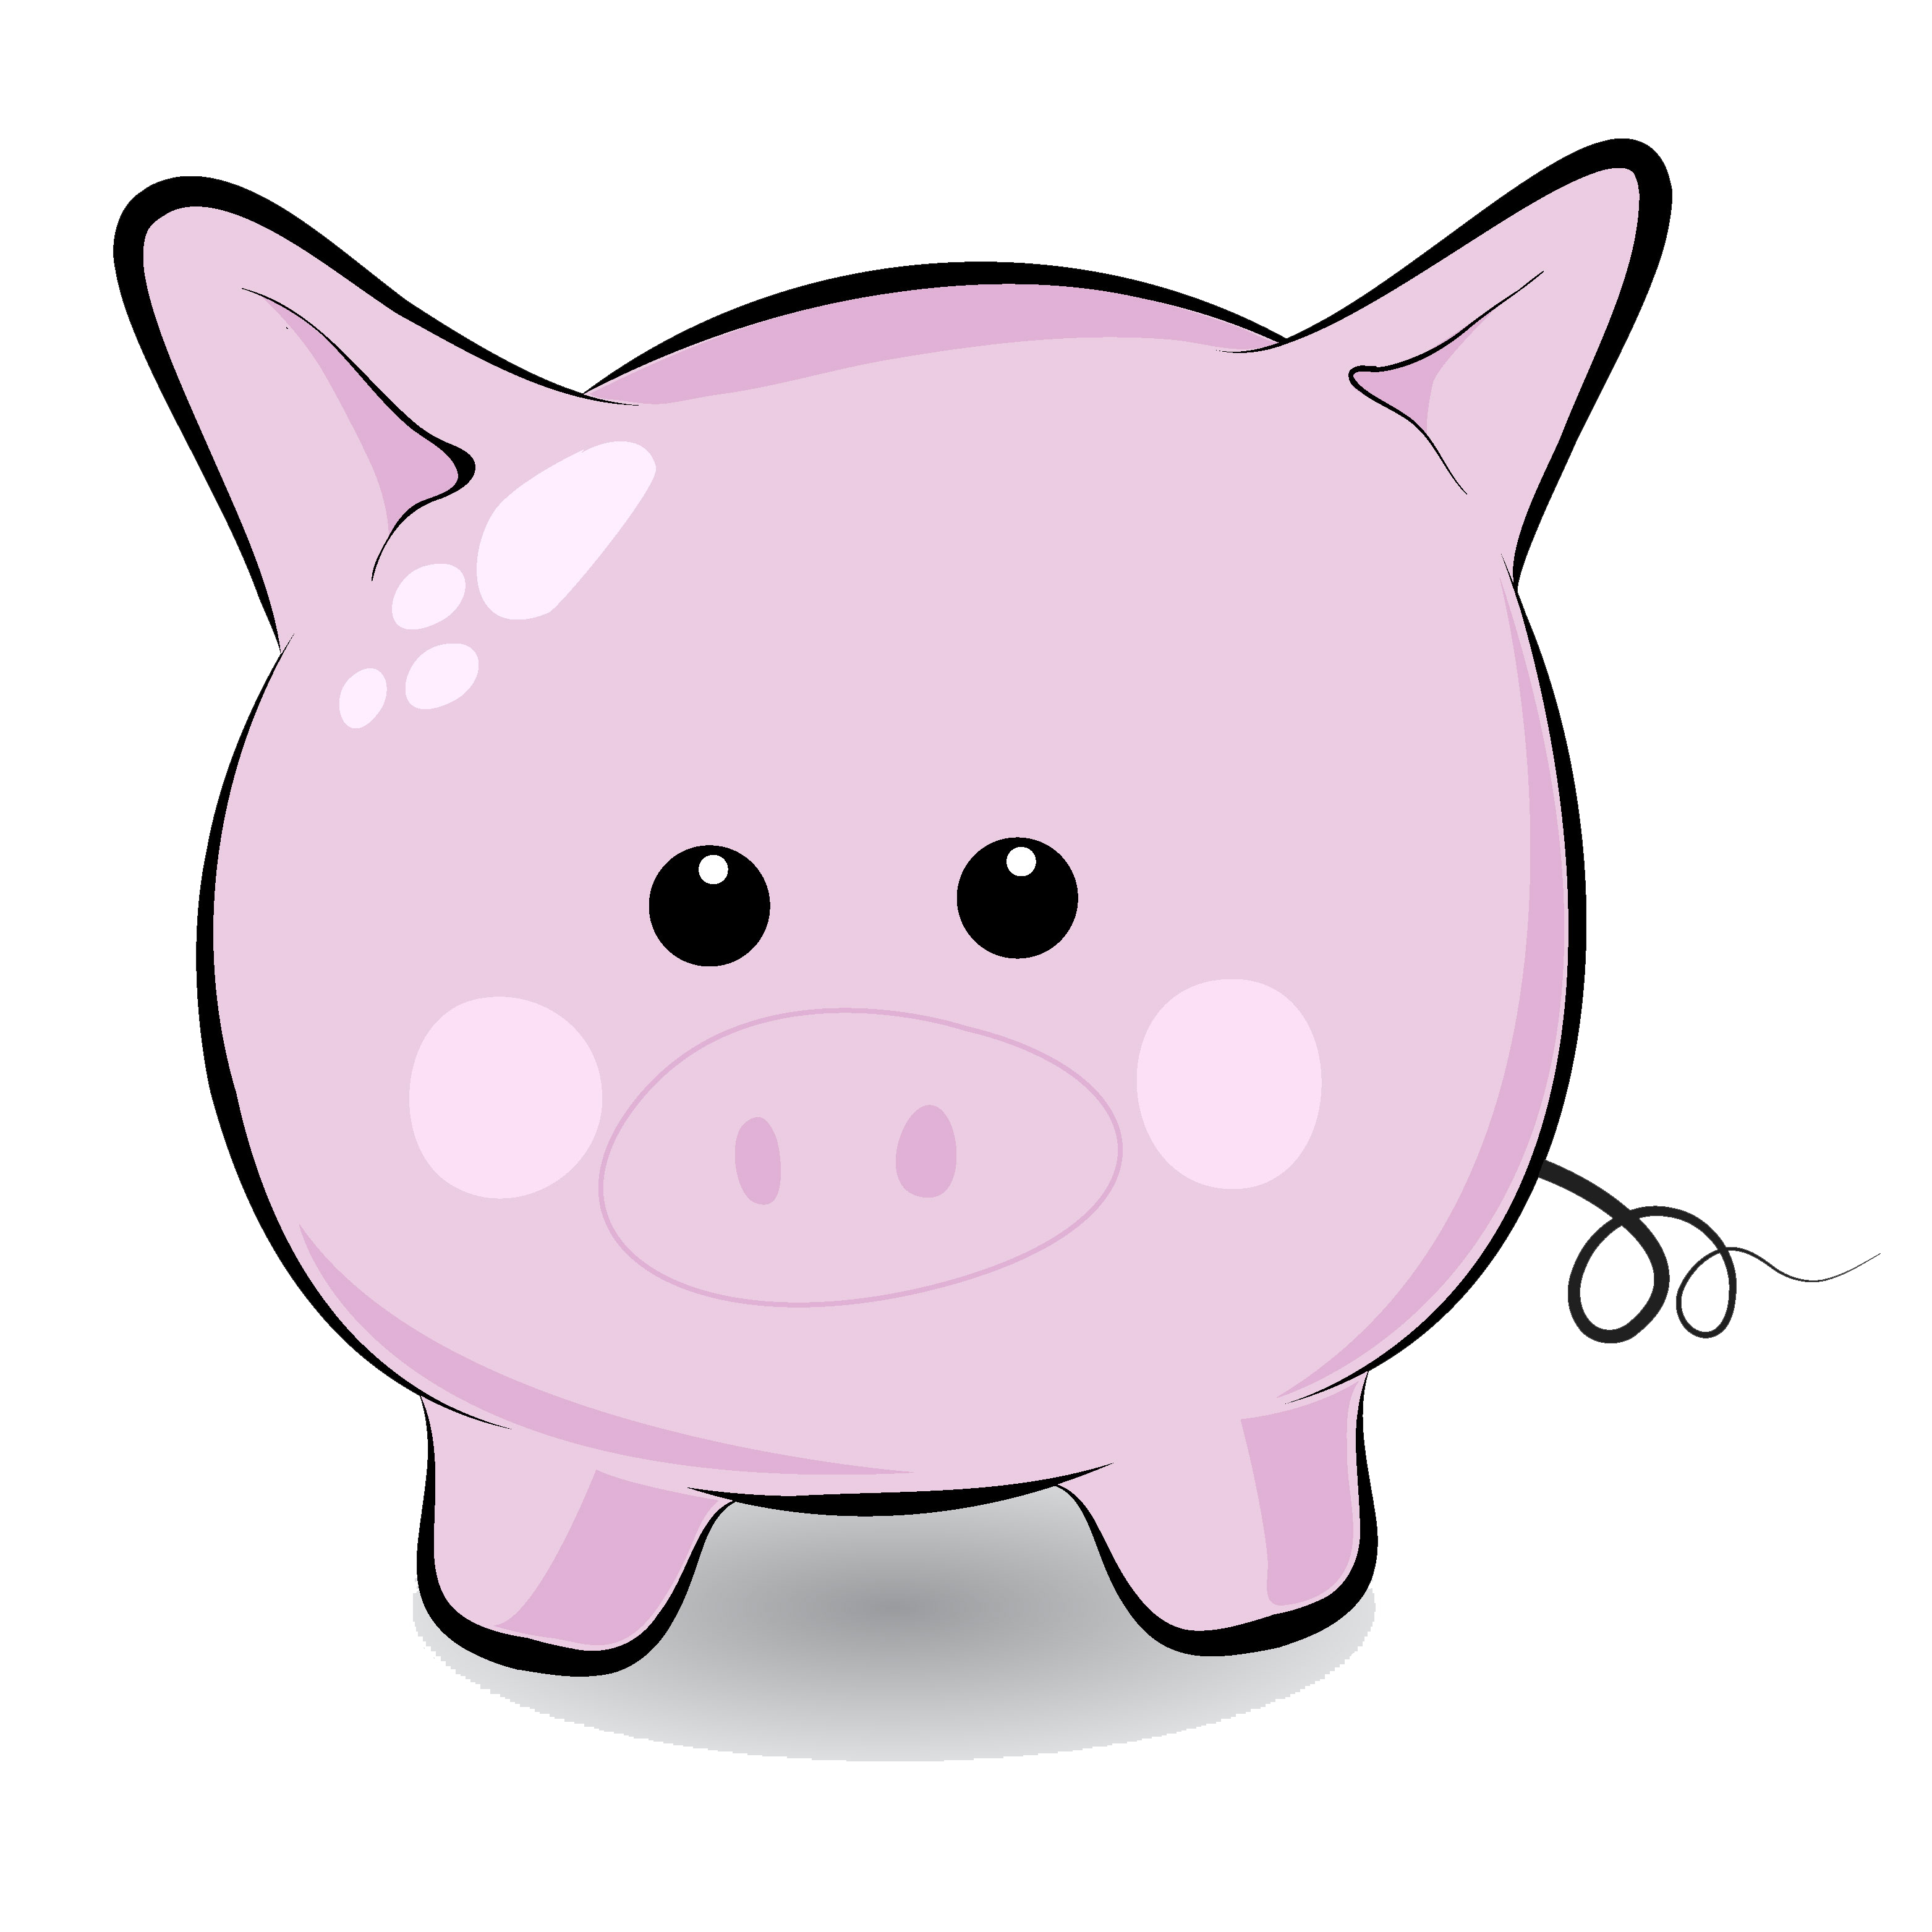 3125x3125 Cute Pig Face Clip Art Free Clipart Images 4